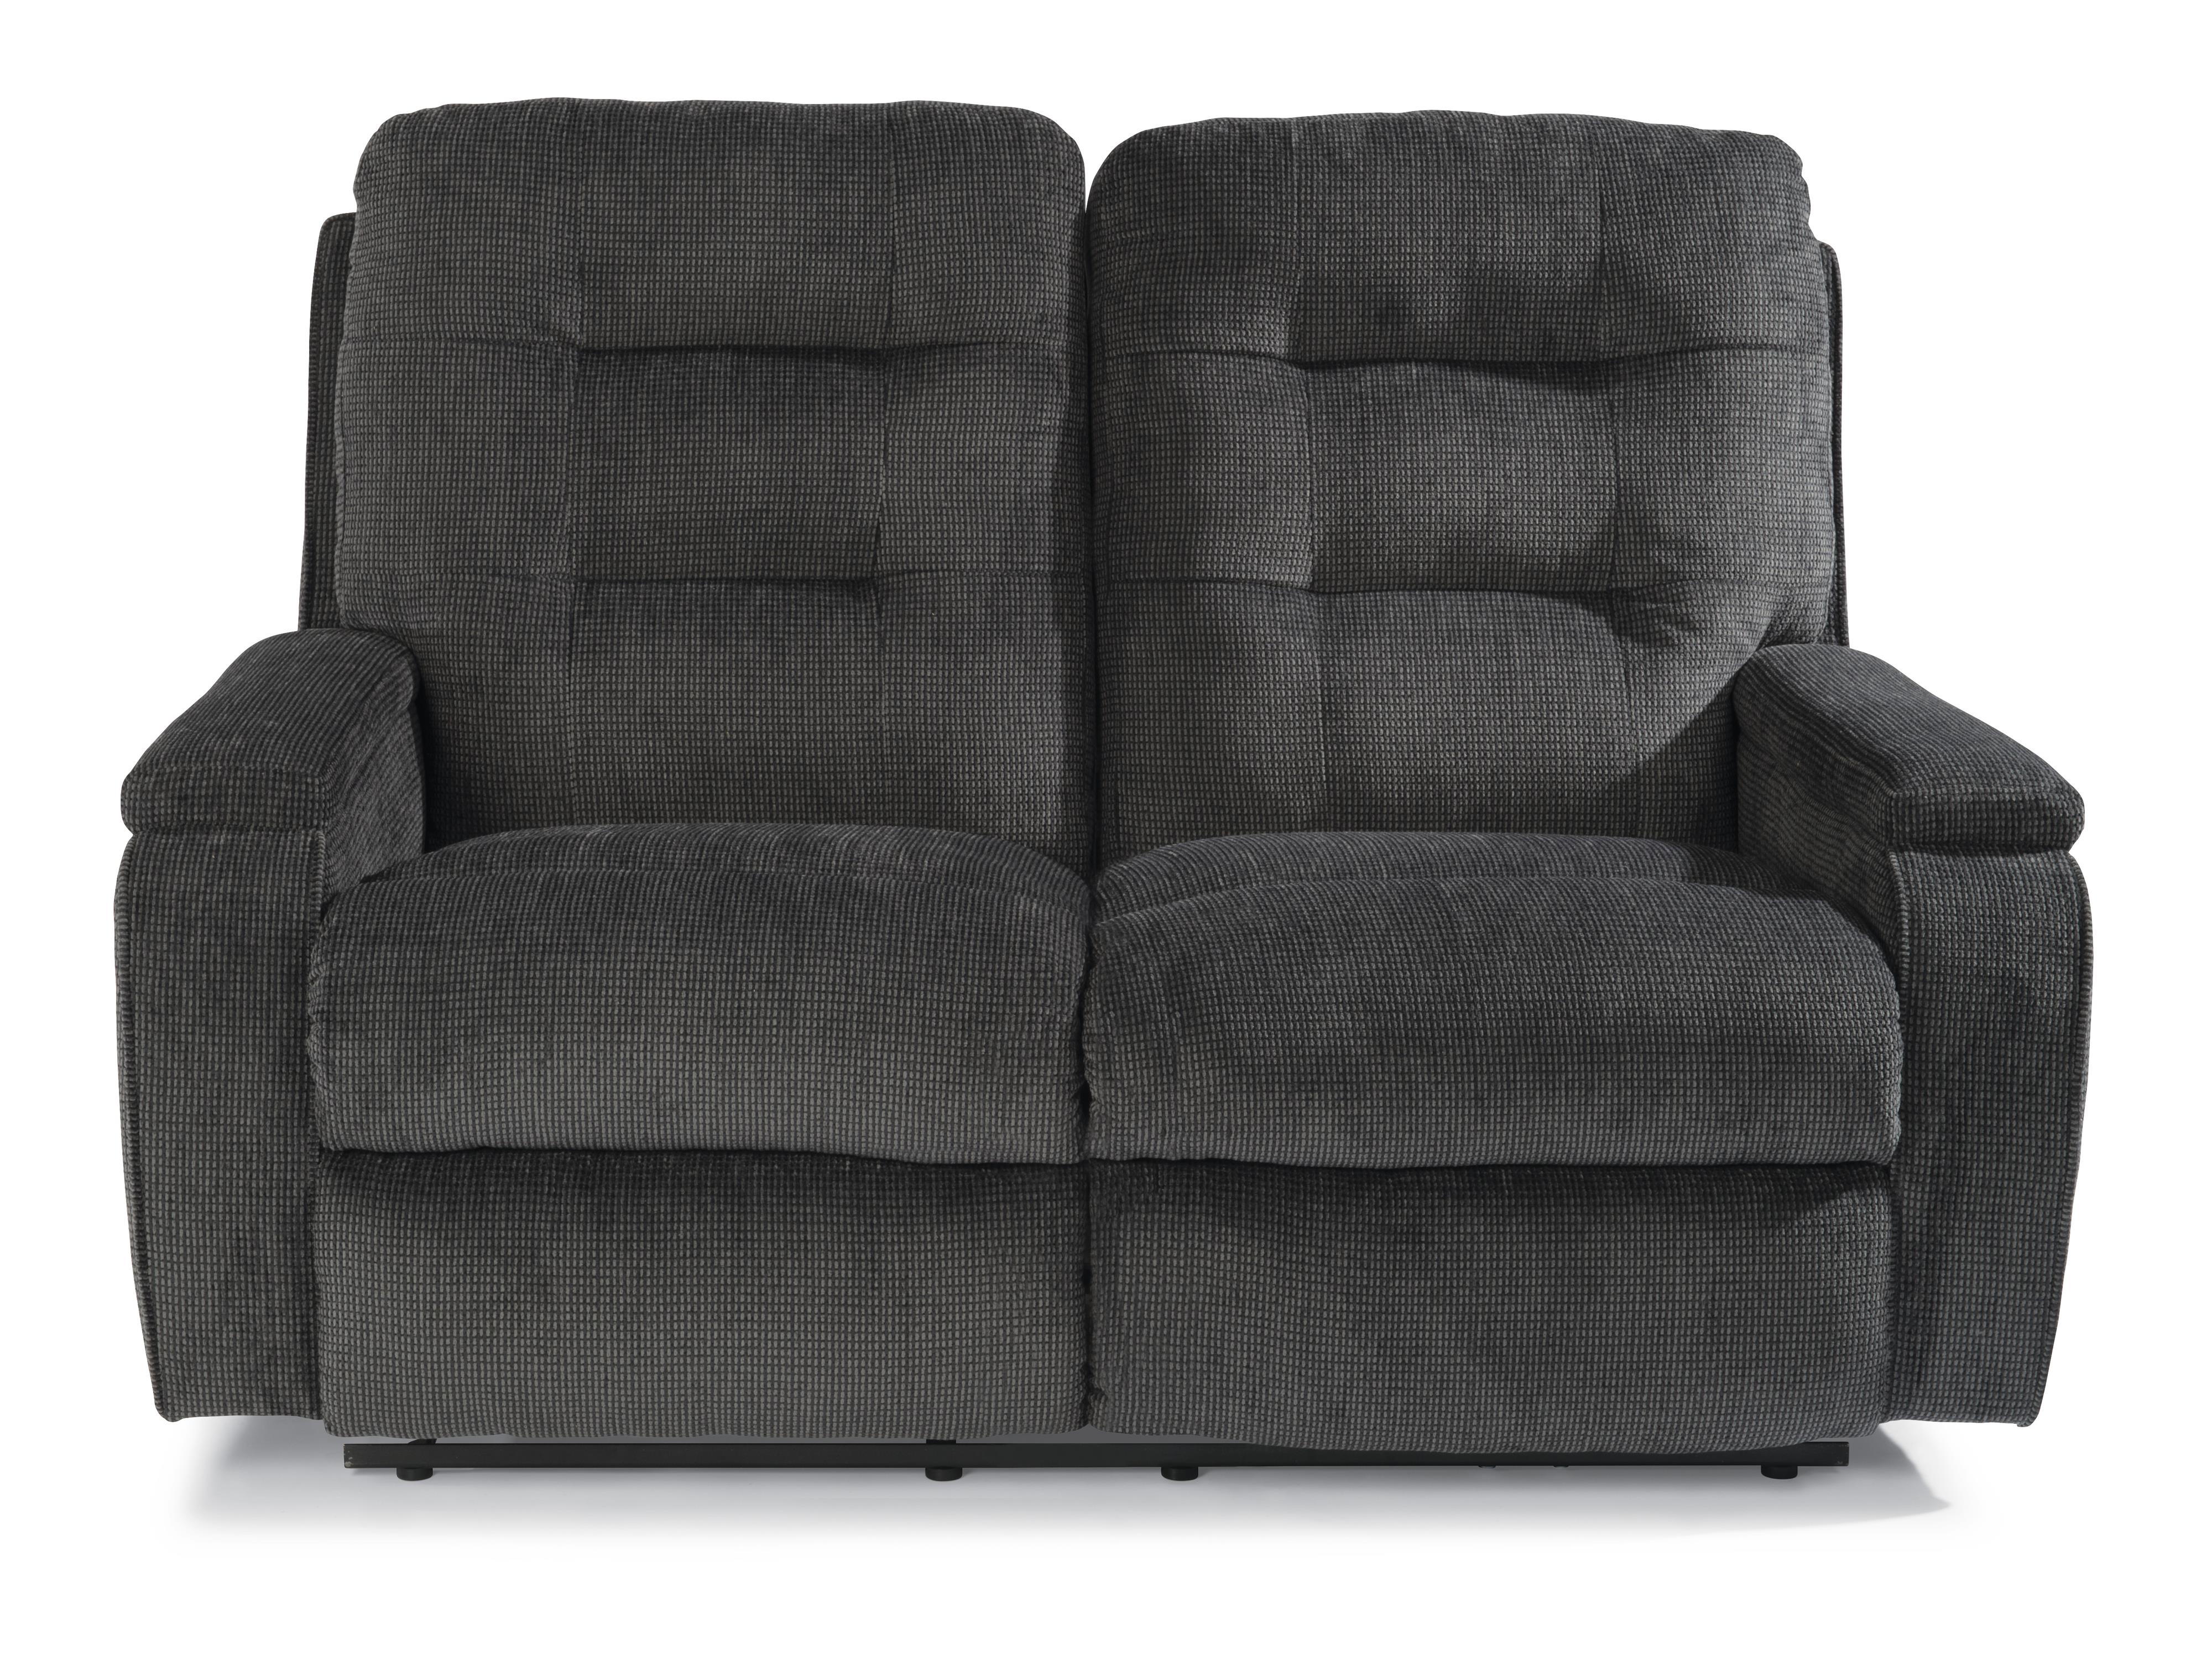 Flexsteel Kerrie Power Reclining Loveseat - Item Number: 2806-60M-163-40